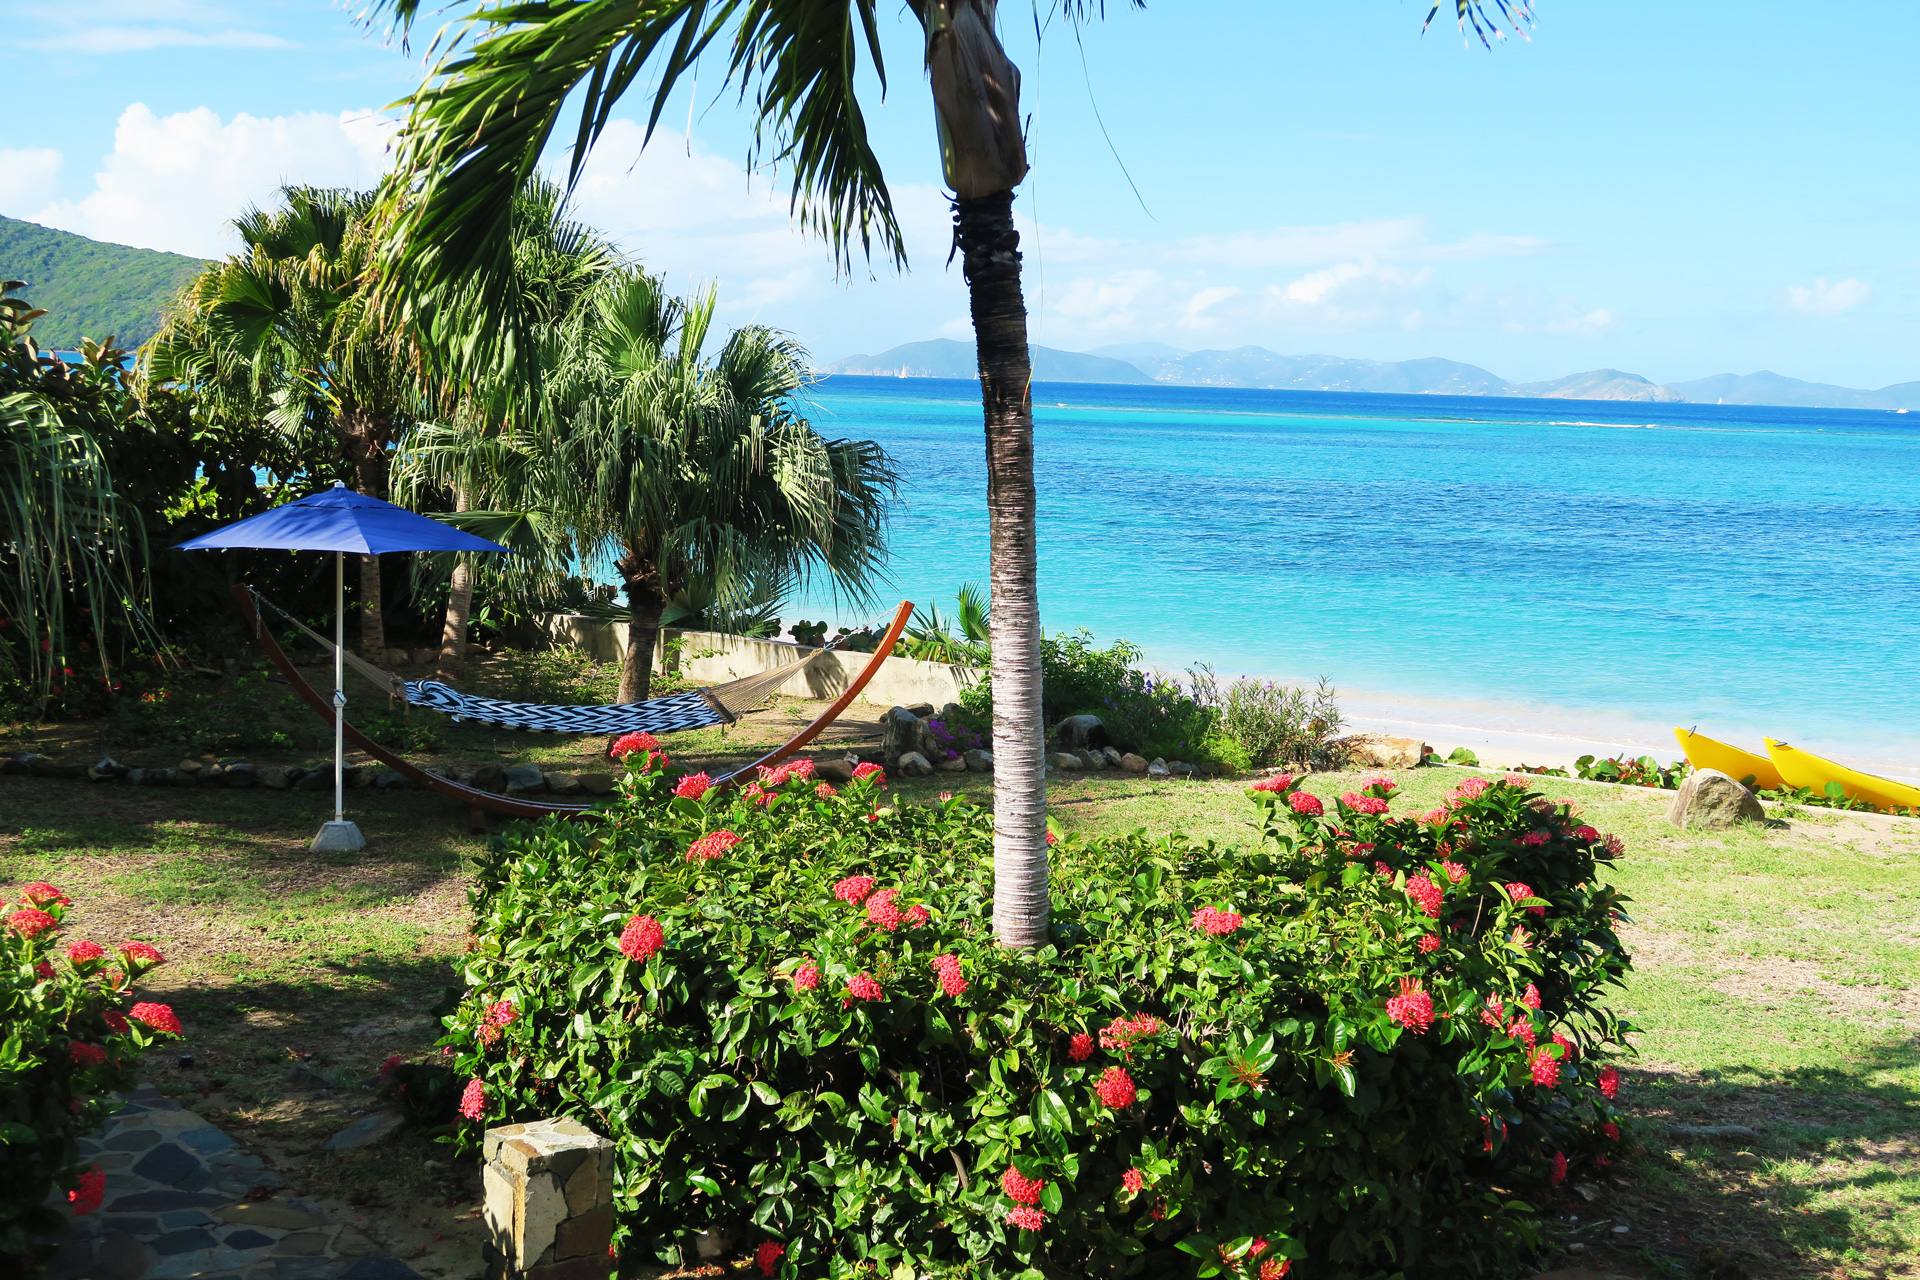 Beach Dreams - Luxurious Mahoe Bay Beachfront Villa Rental